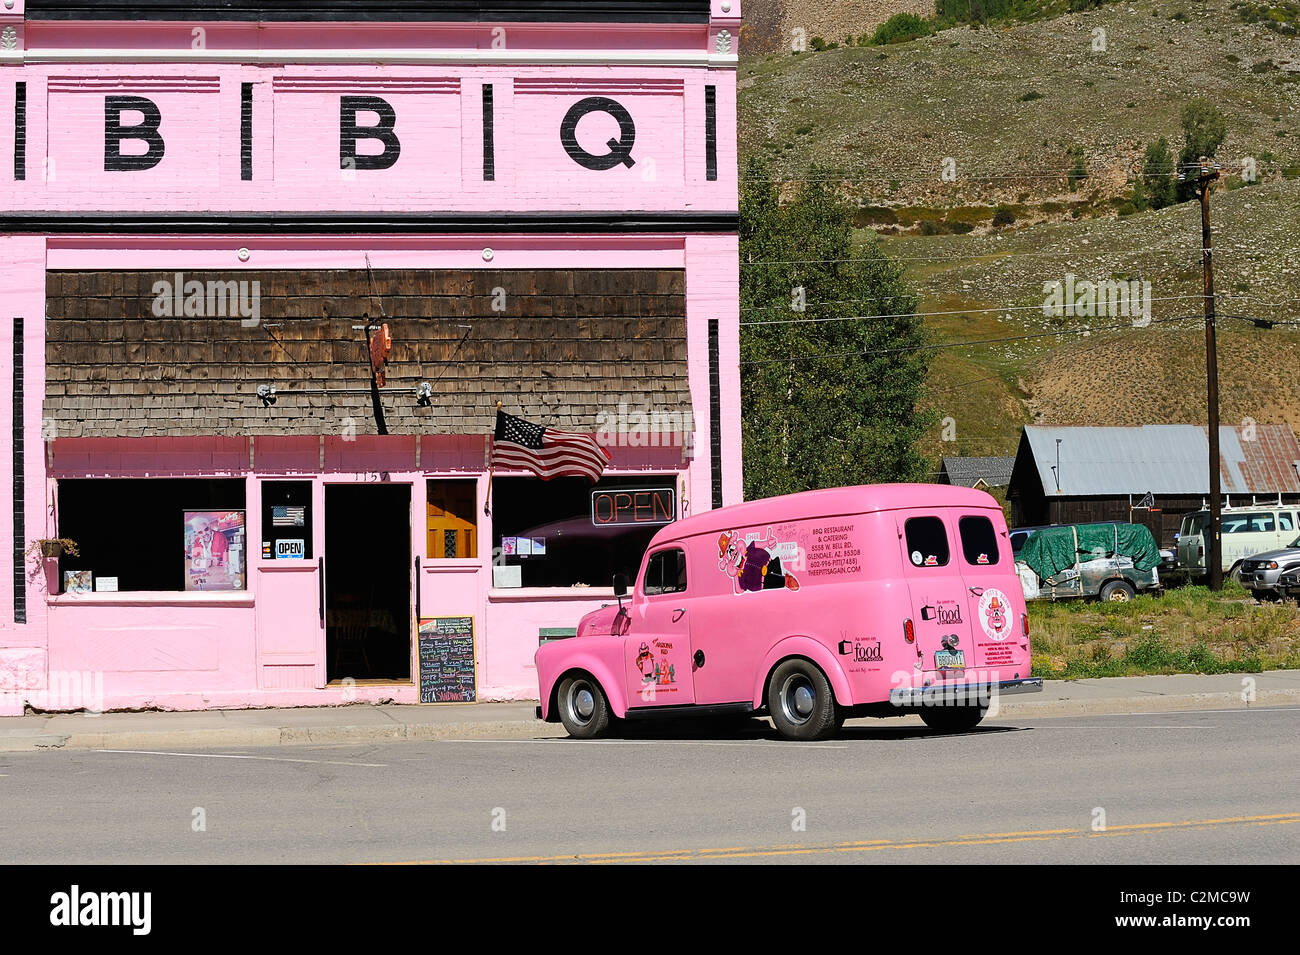 Pink car outside a pink BBQ restaurant on Blair Street, Silverton city, Silverton in the mountains of Colorado, Stock Photo